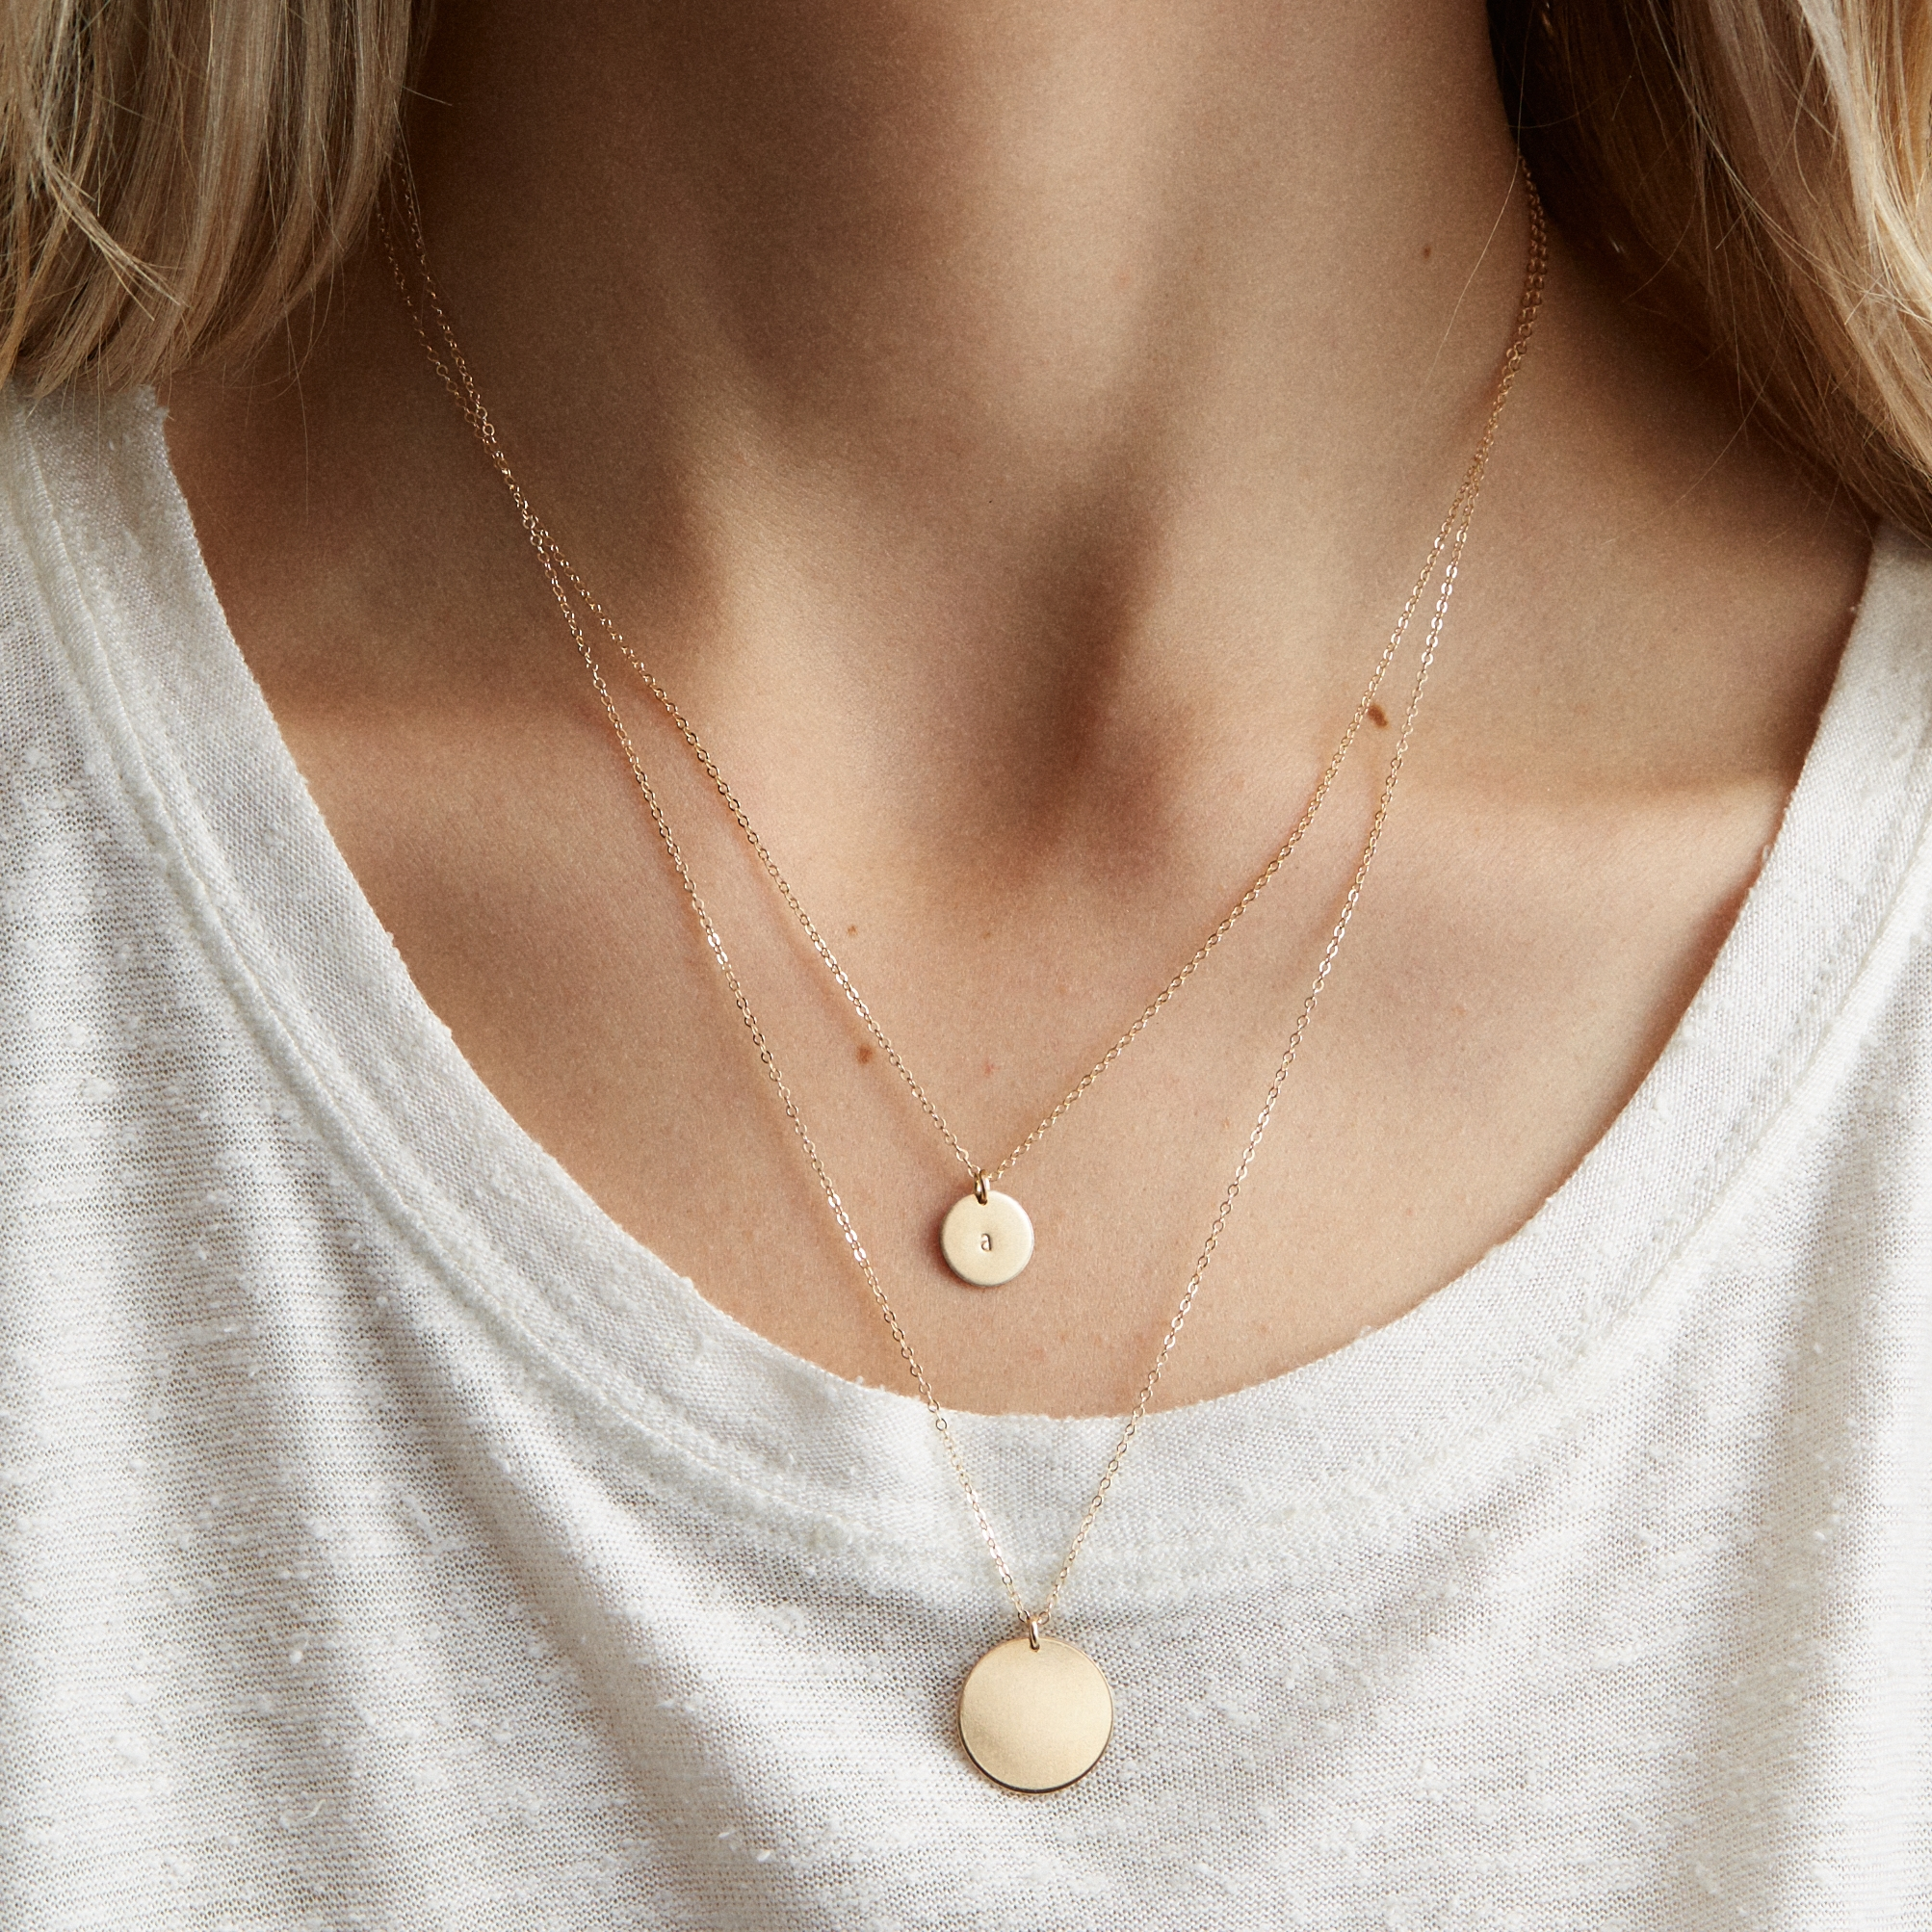 c13c2779d Layered Set: Marama + Personalized Lor Disk Necklaces — GLDN